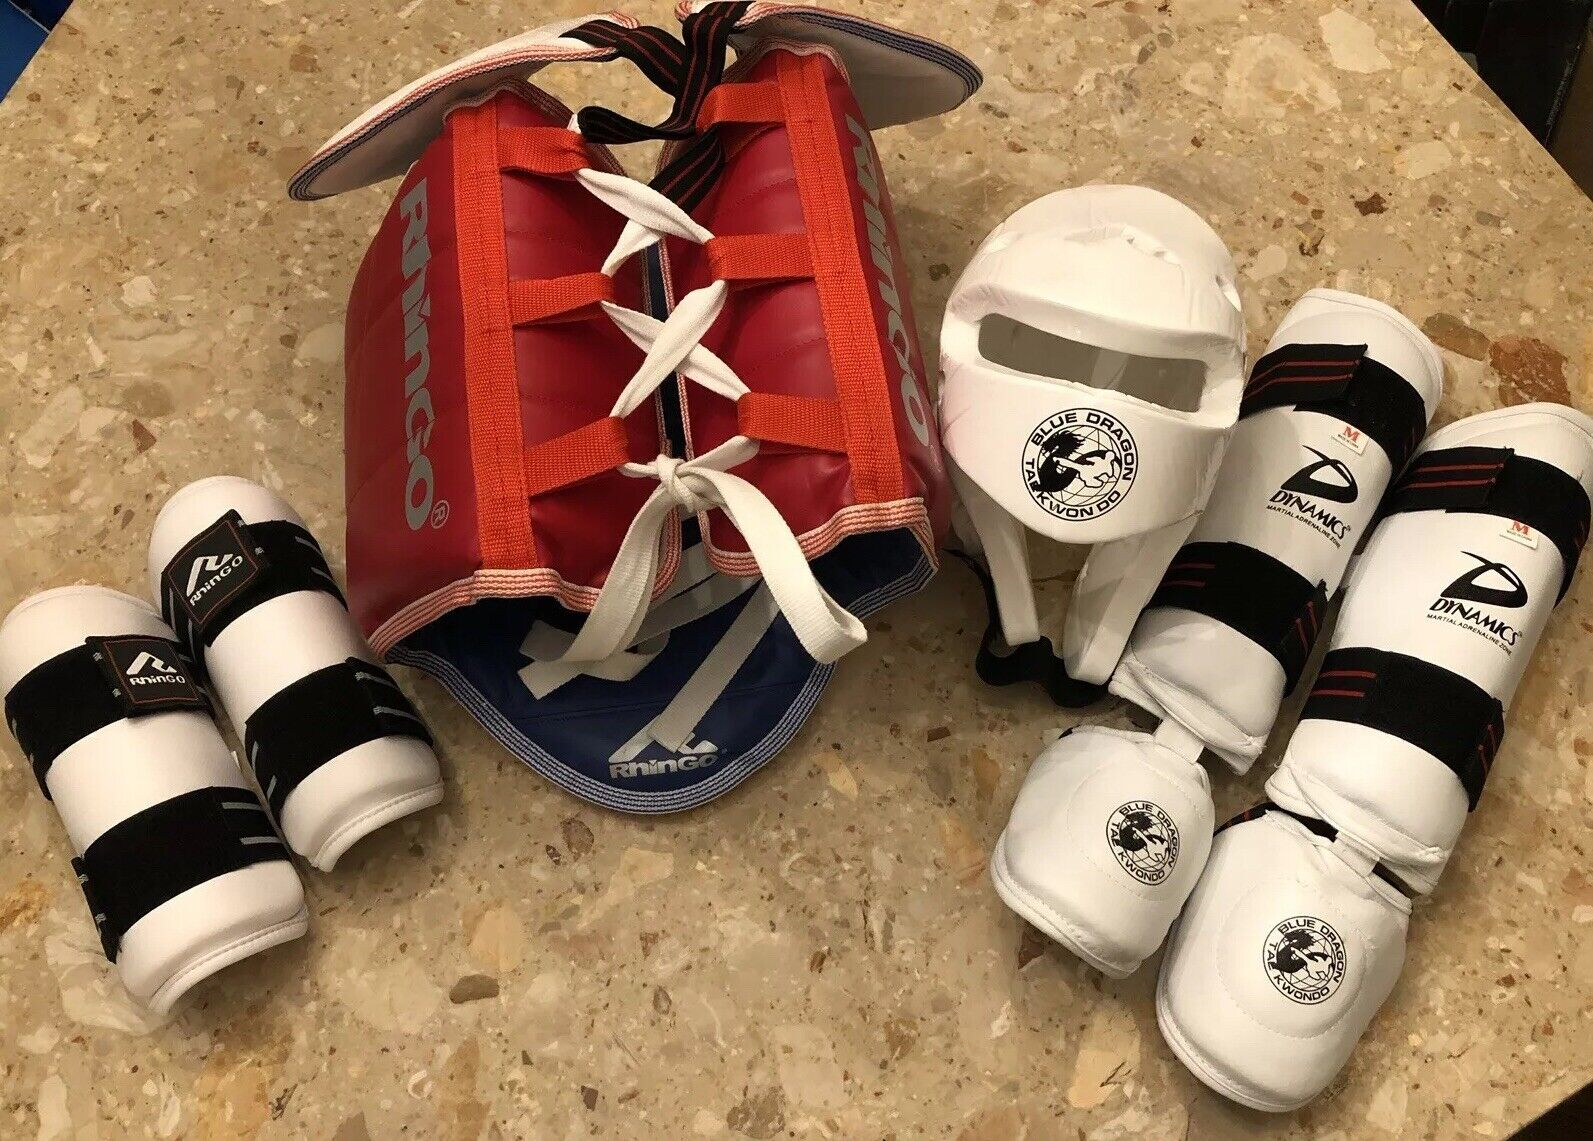 Rhingo Karate Taekwondo Sparring 6 Piece Set, Red And White Excellent POC Med